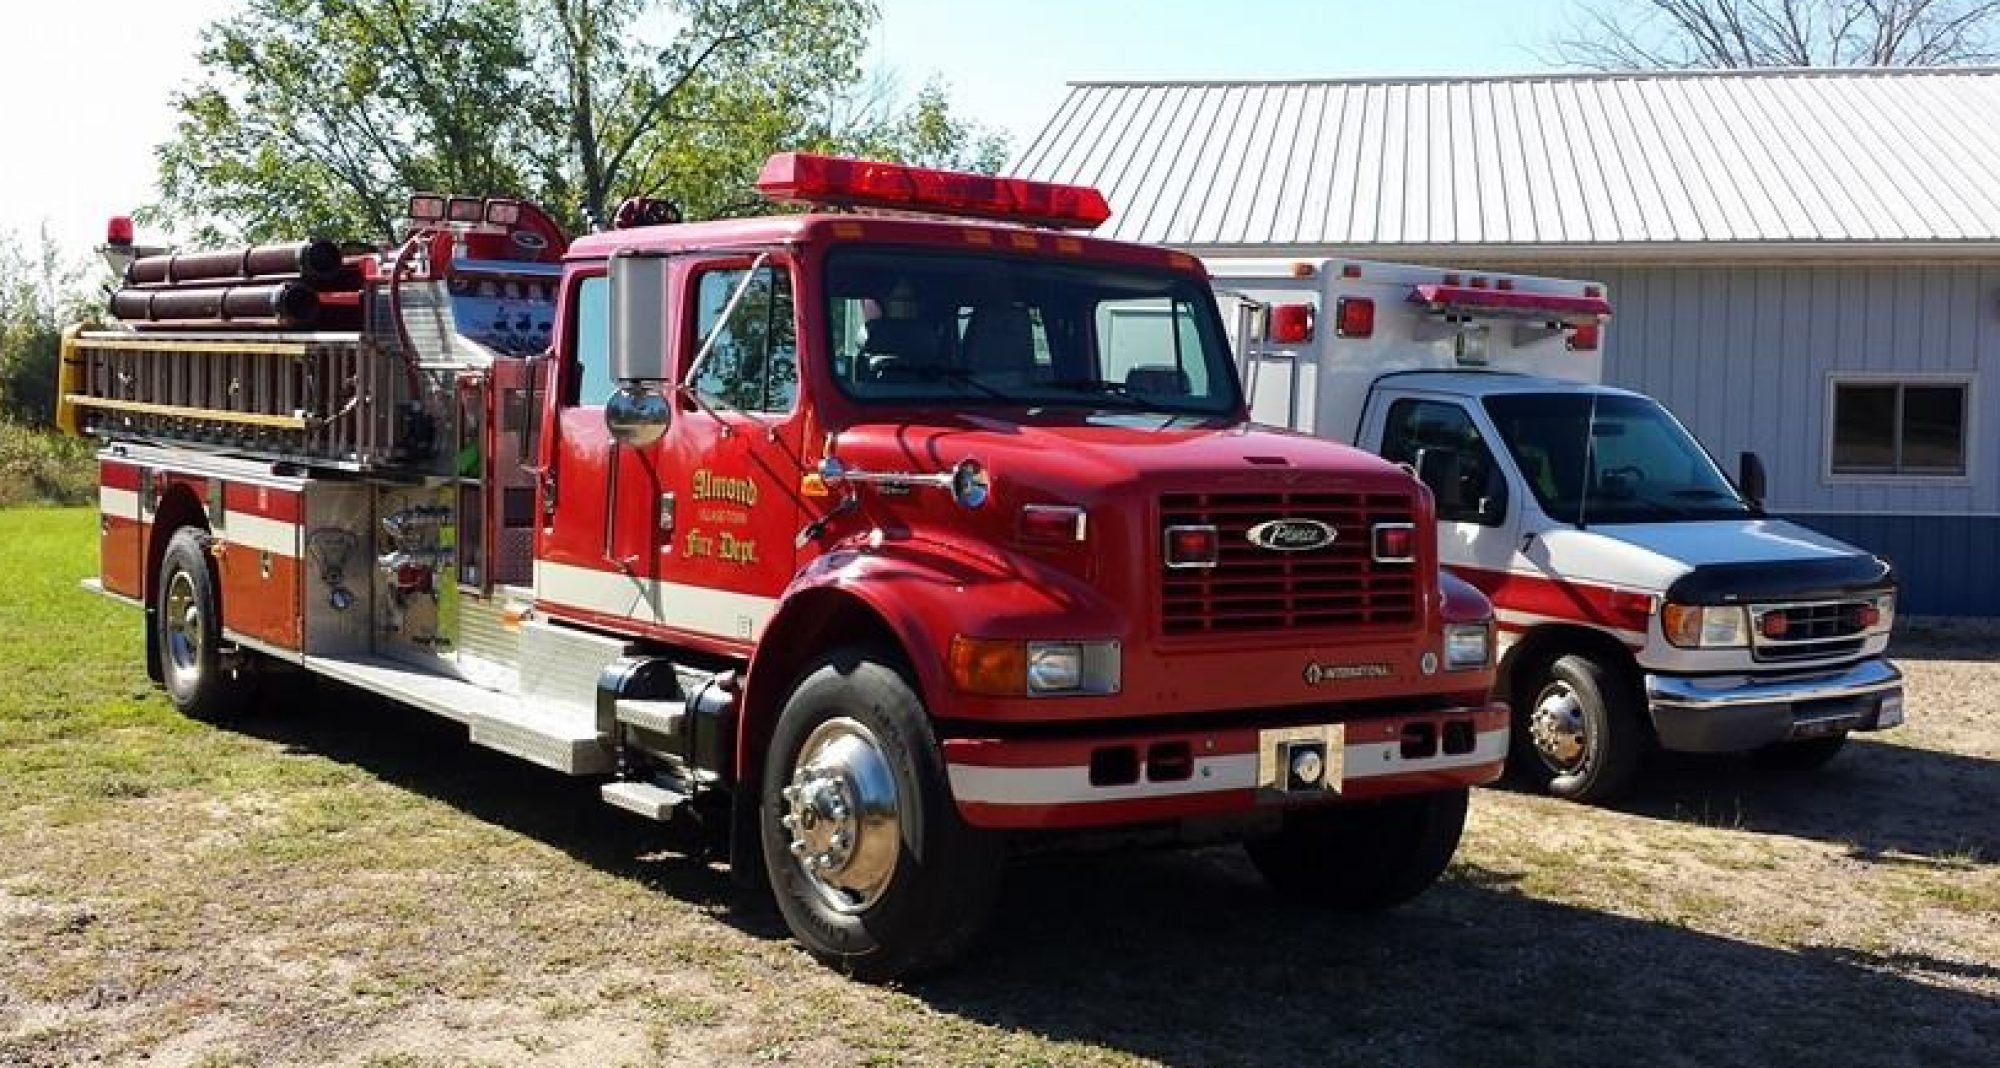 Almond Fire Department and First Responders